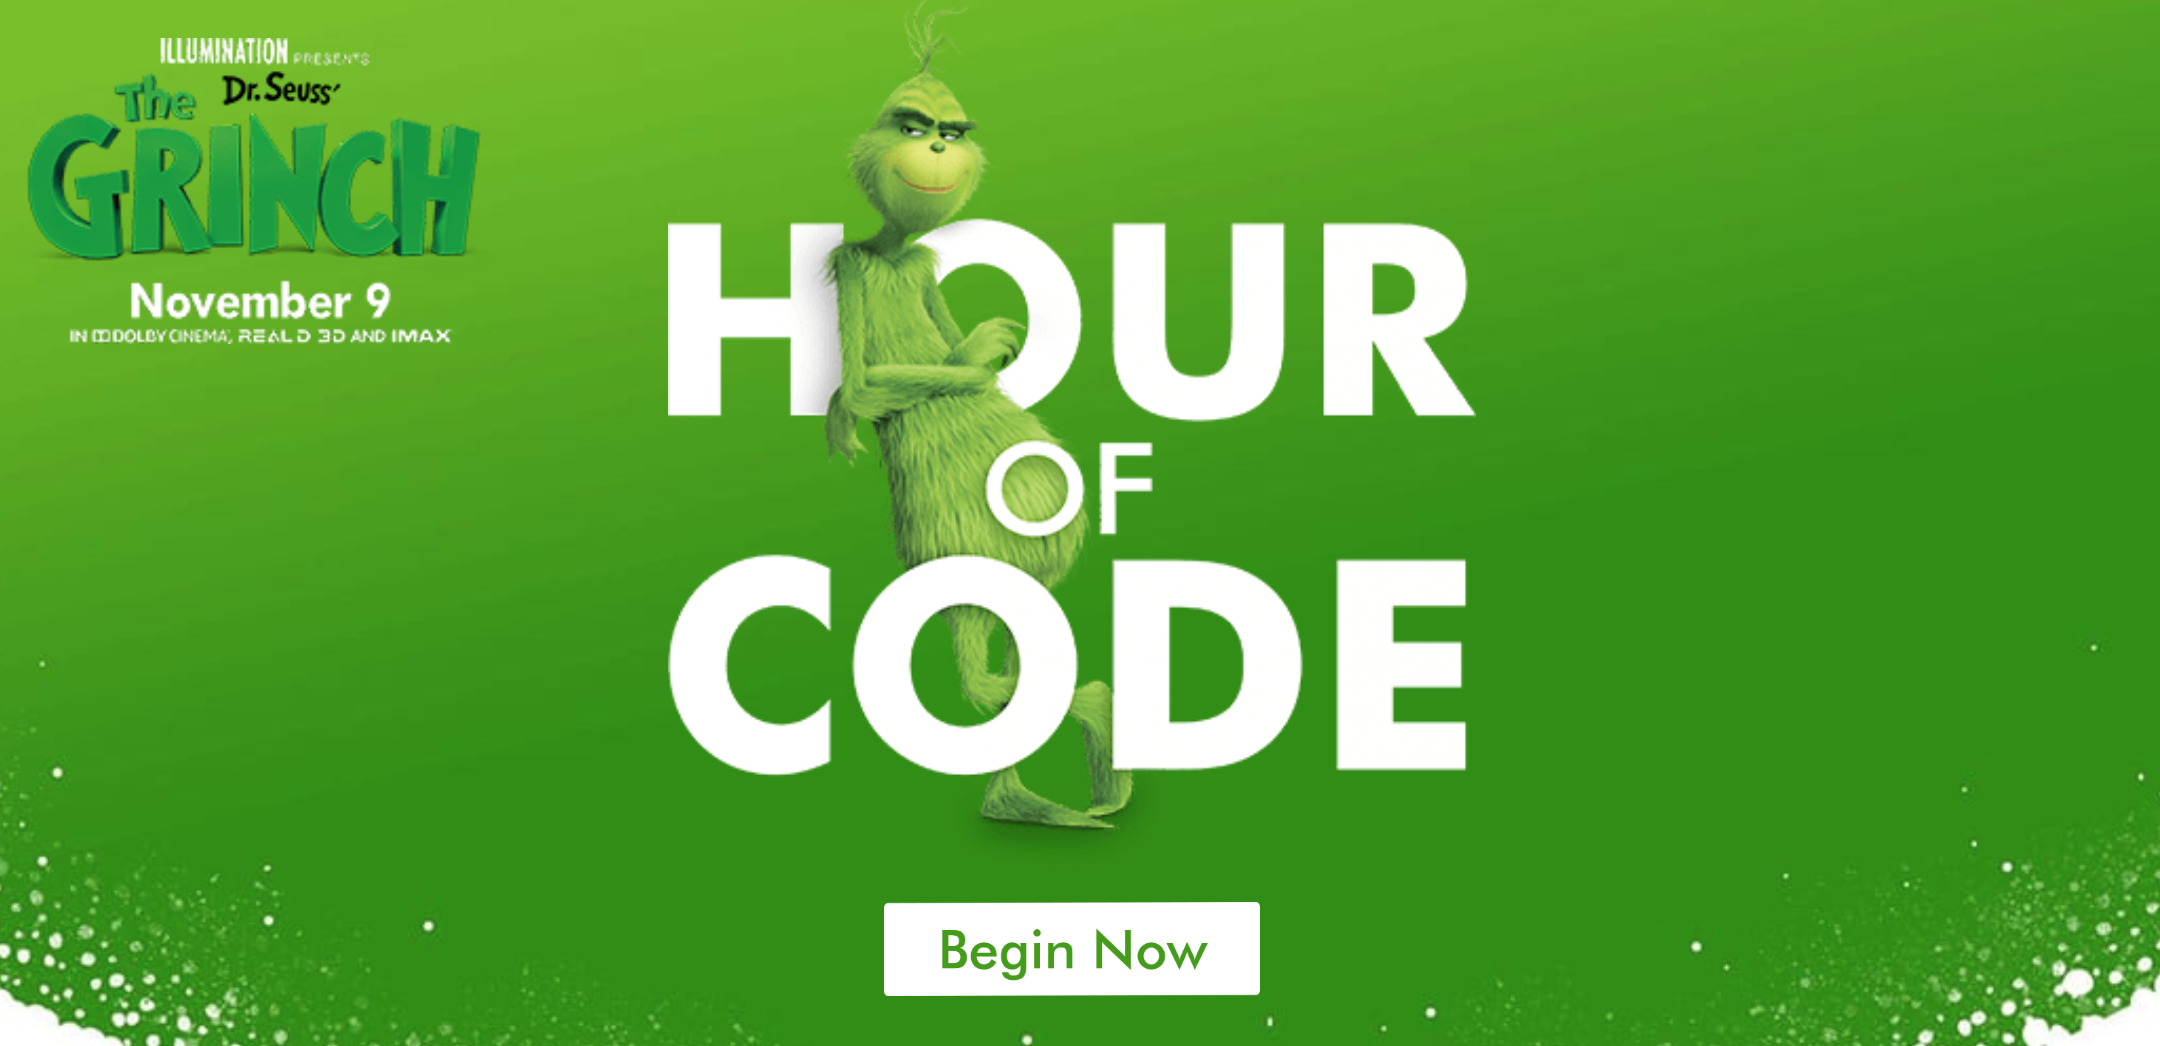 Coding Game for Illumination Presents Dr. Seuss' The Grinch - Code Fever's team partnered with NBCUniversal and Illumination Entertainment to design and develop a Google Blockly based Coding Game for the National Hour of Code.